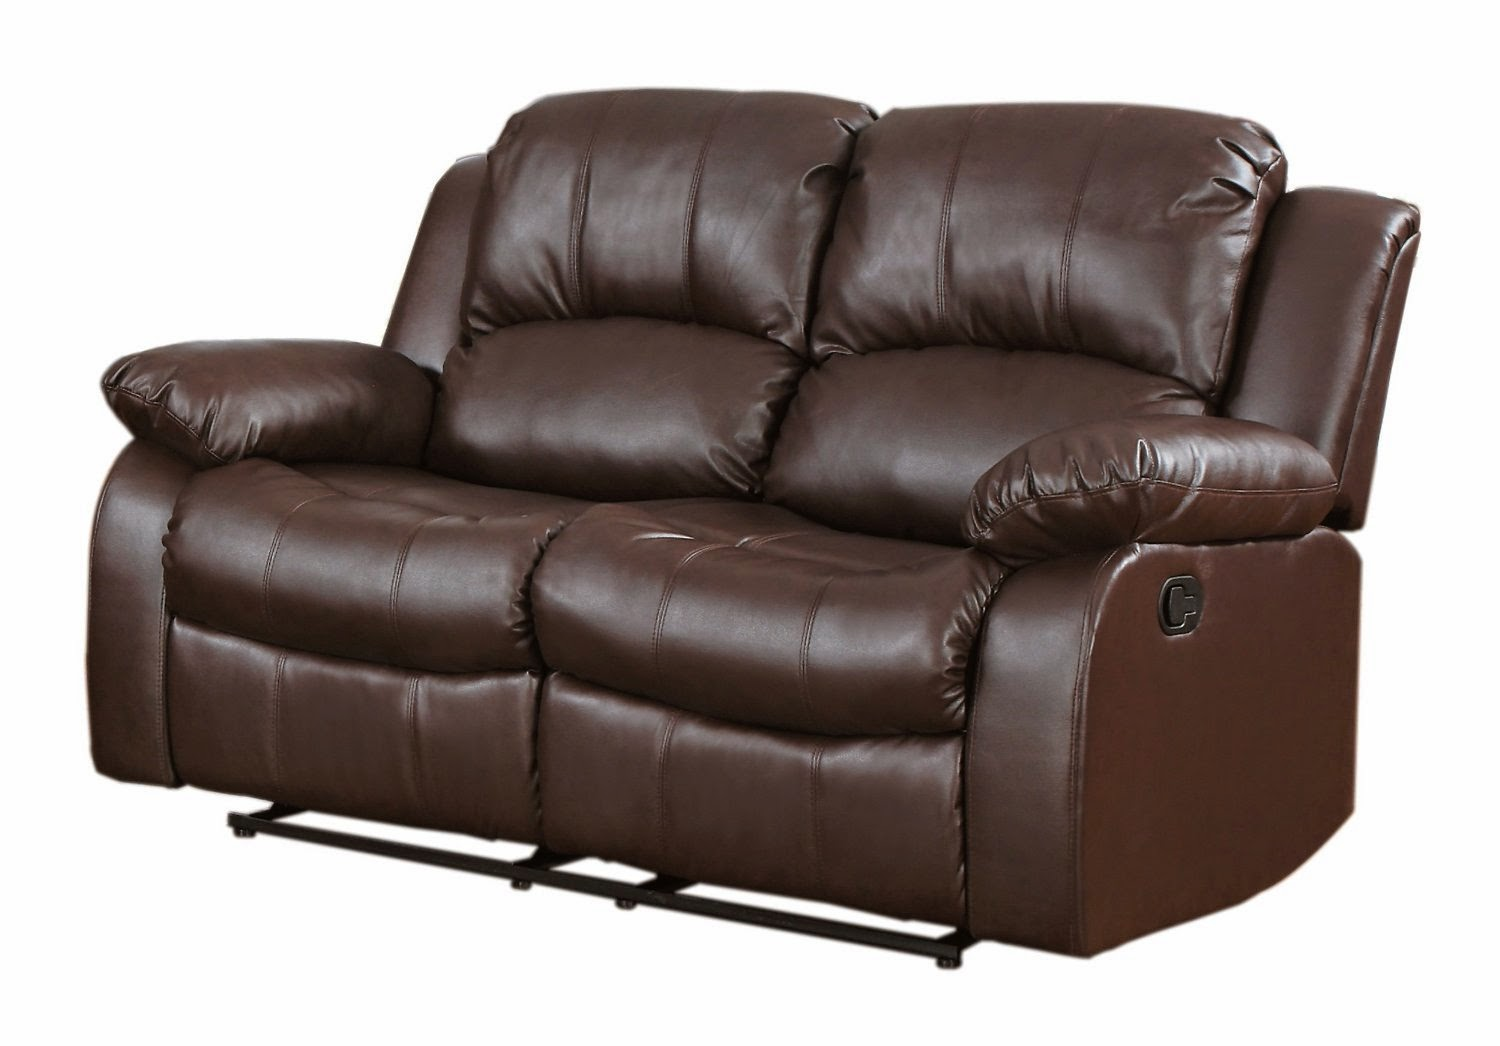 where is the best place to buy recliner sofa 2 seater With leather sofa recliner